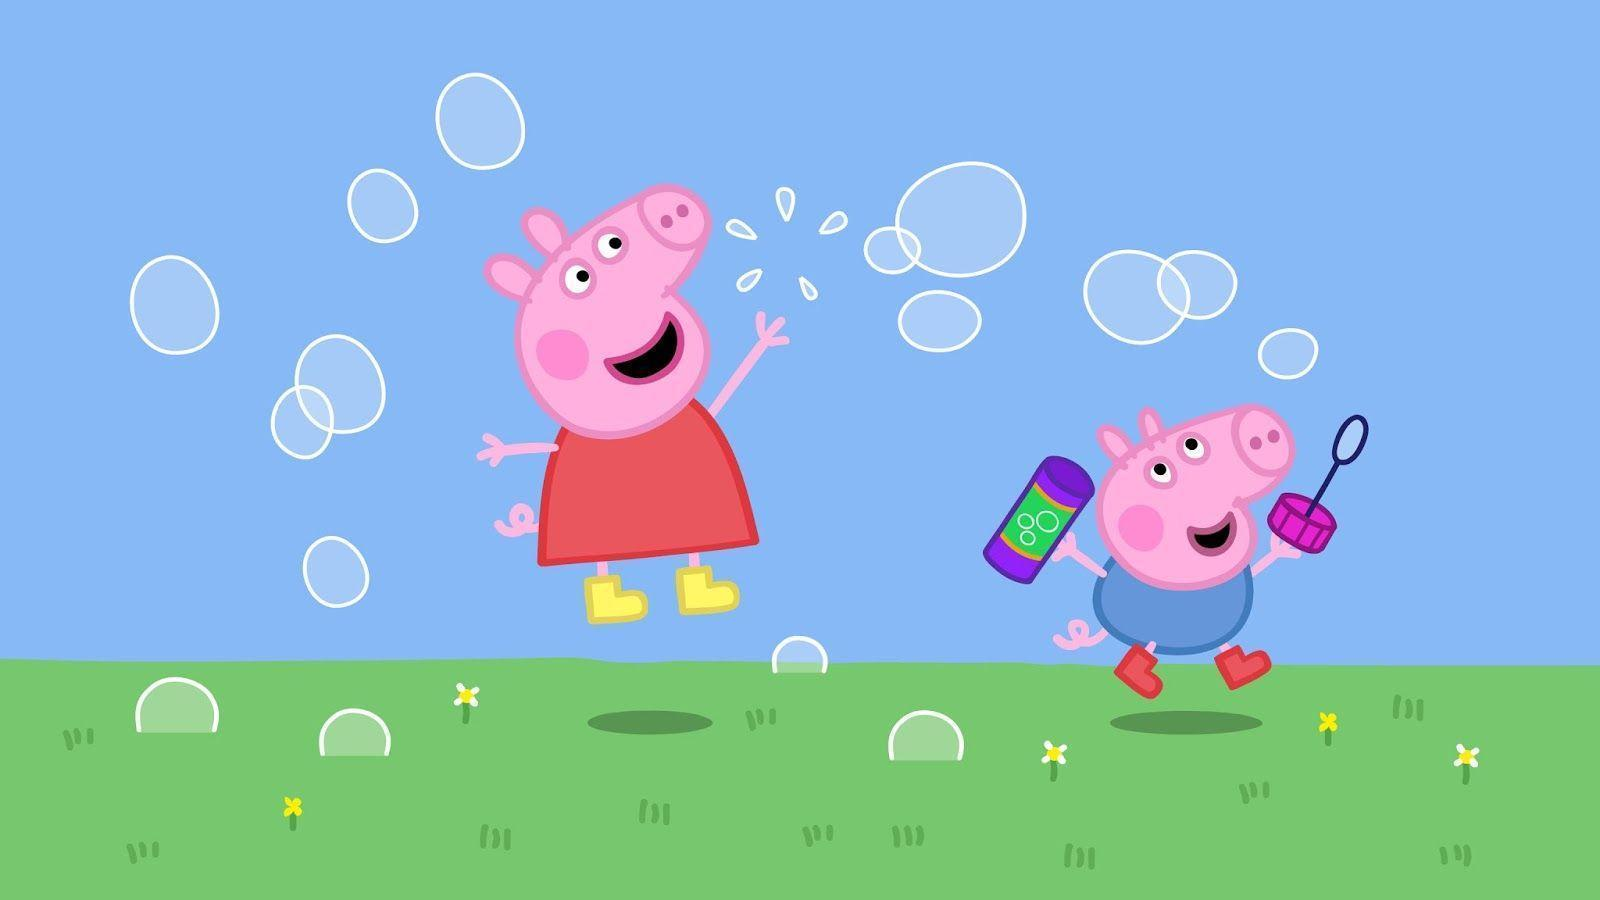 Disney HD Wallpapers: Peppa Pig HD Wallpapers